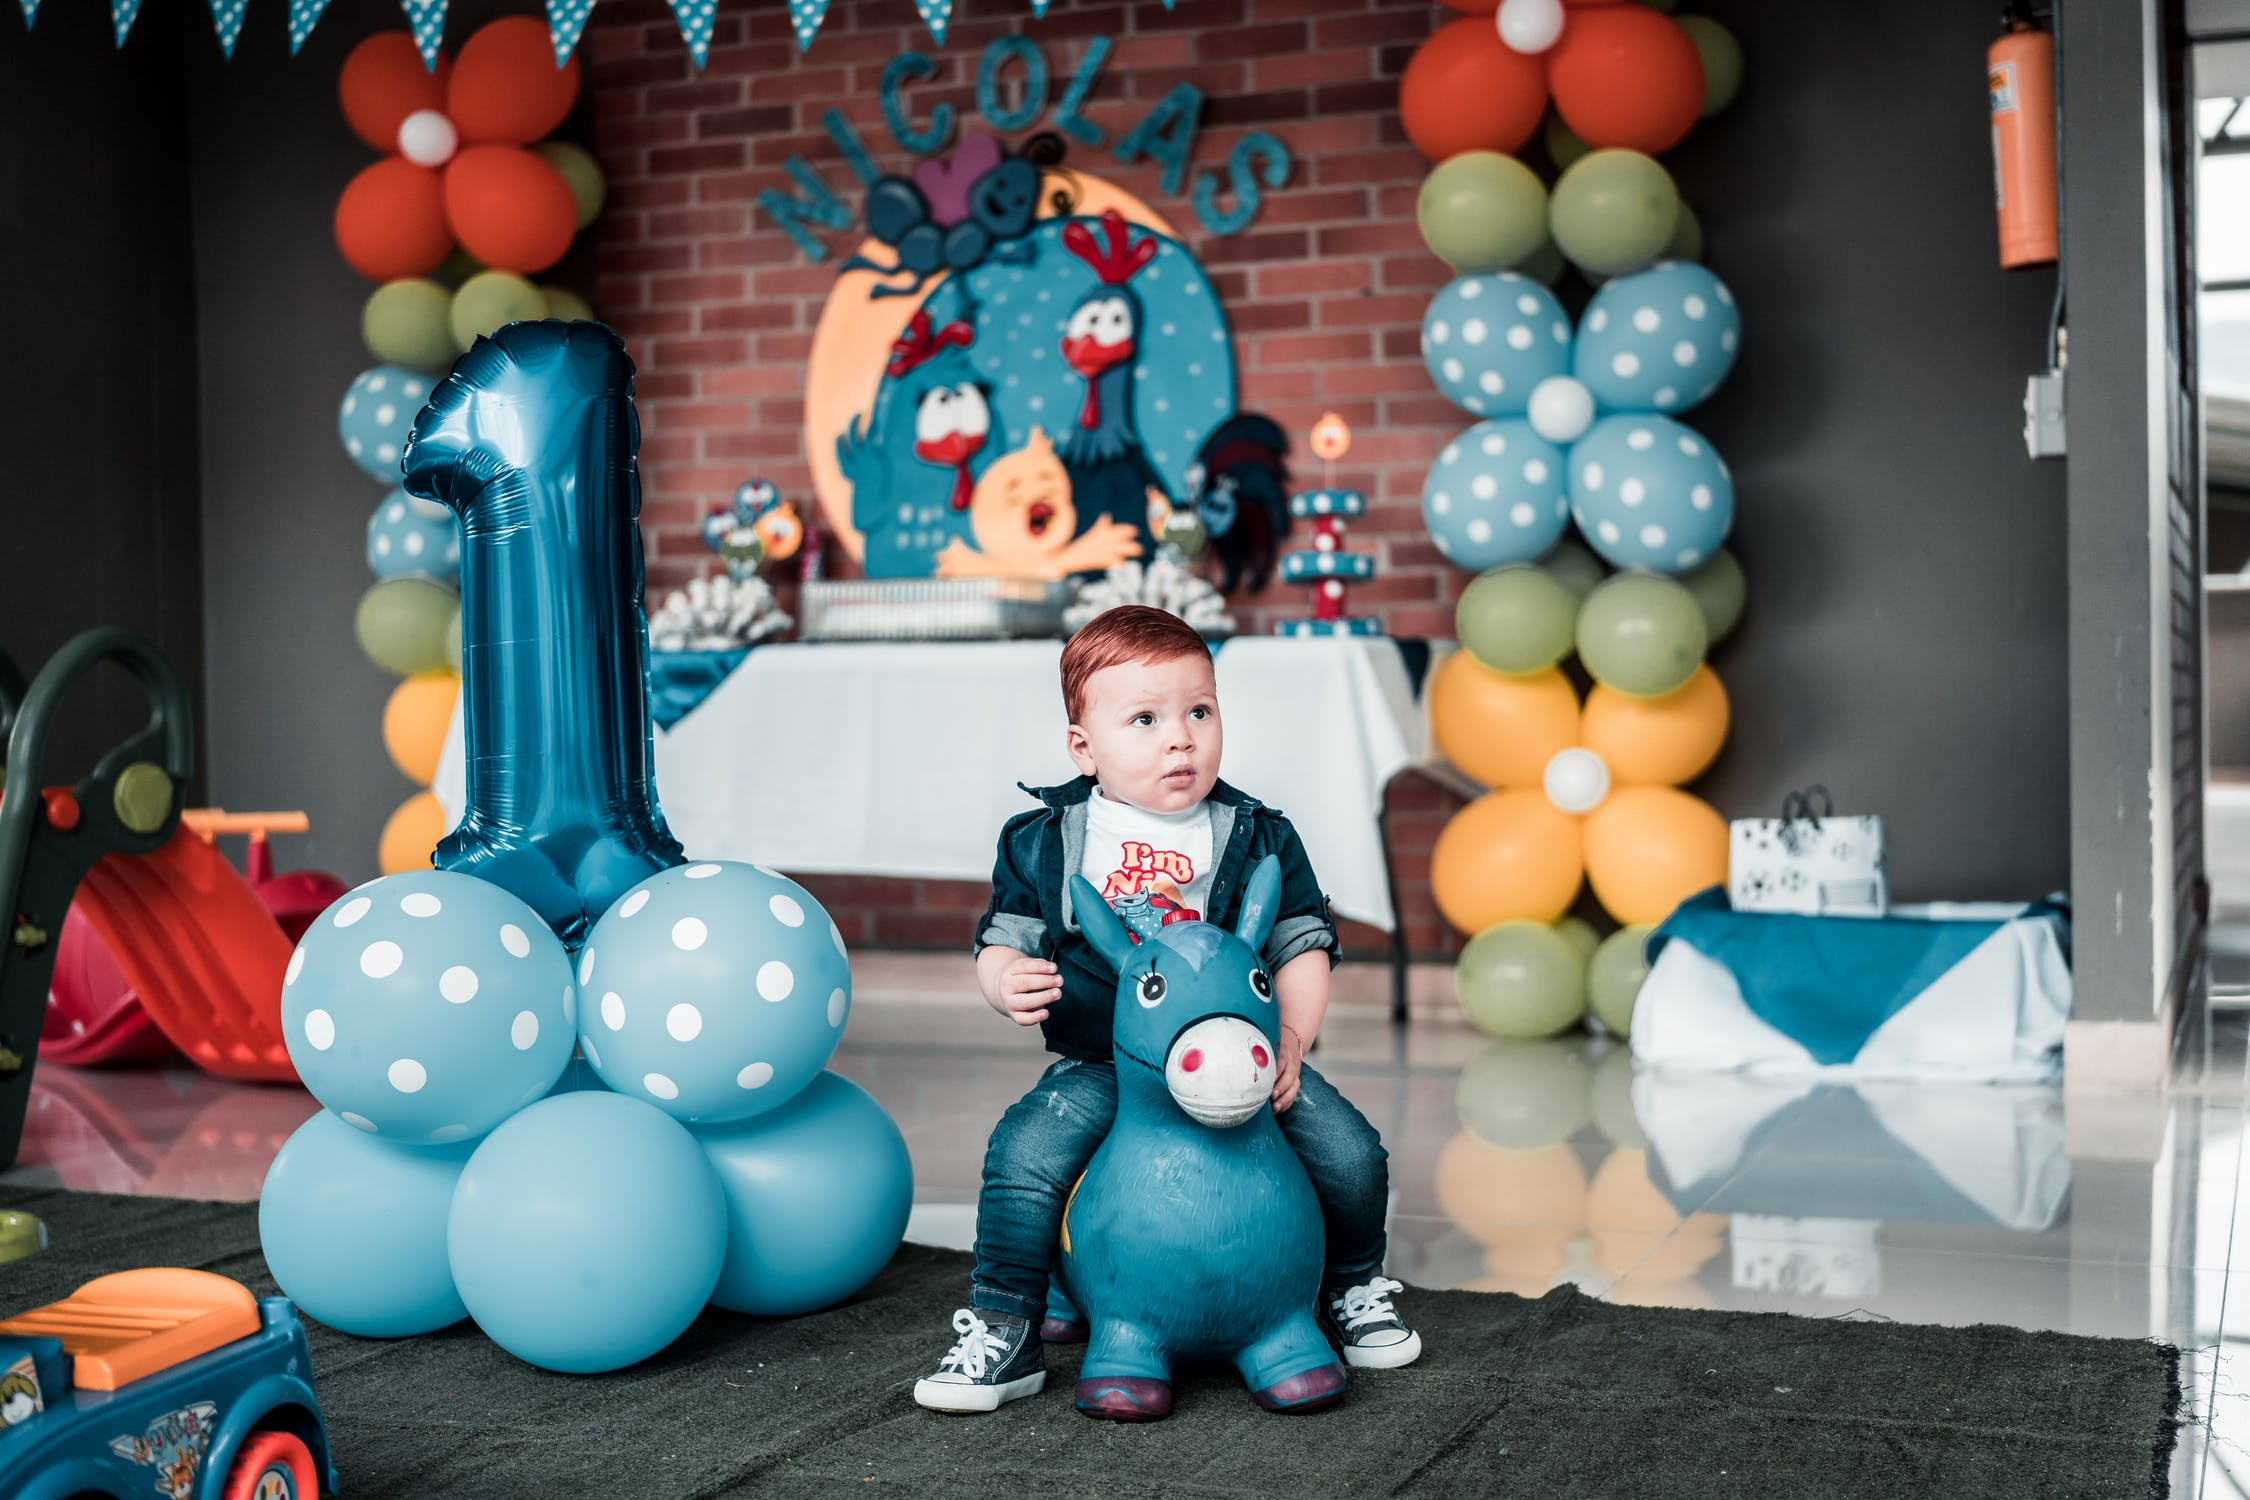 The birthday party | Source: Pexels